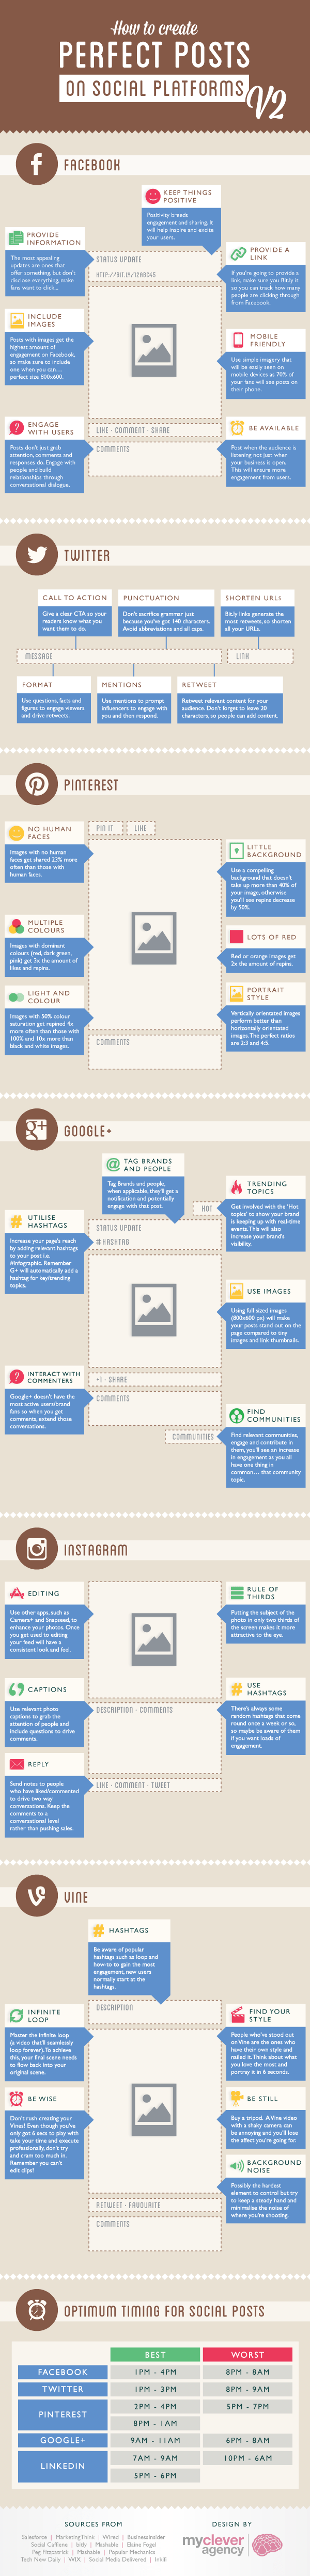 How to create perfect posts on social media platforms infographic